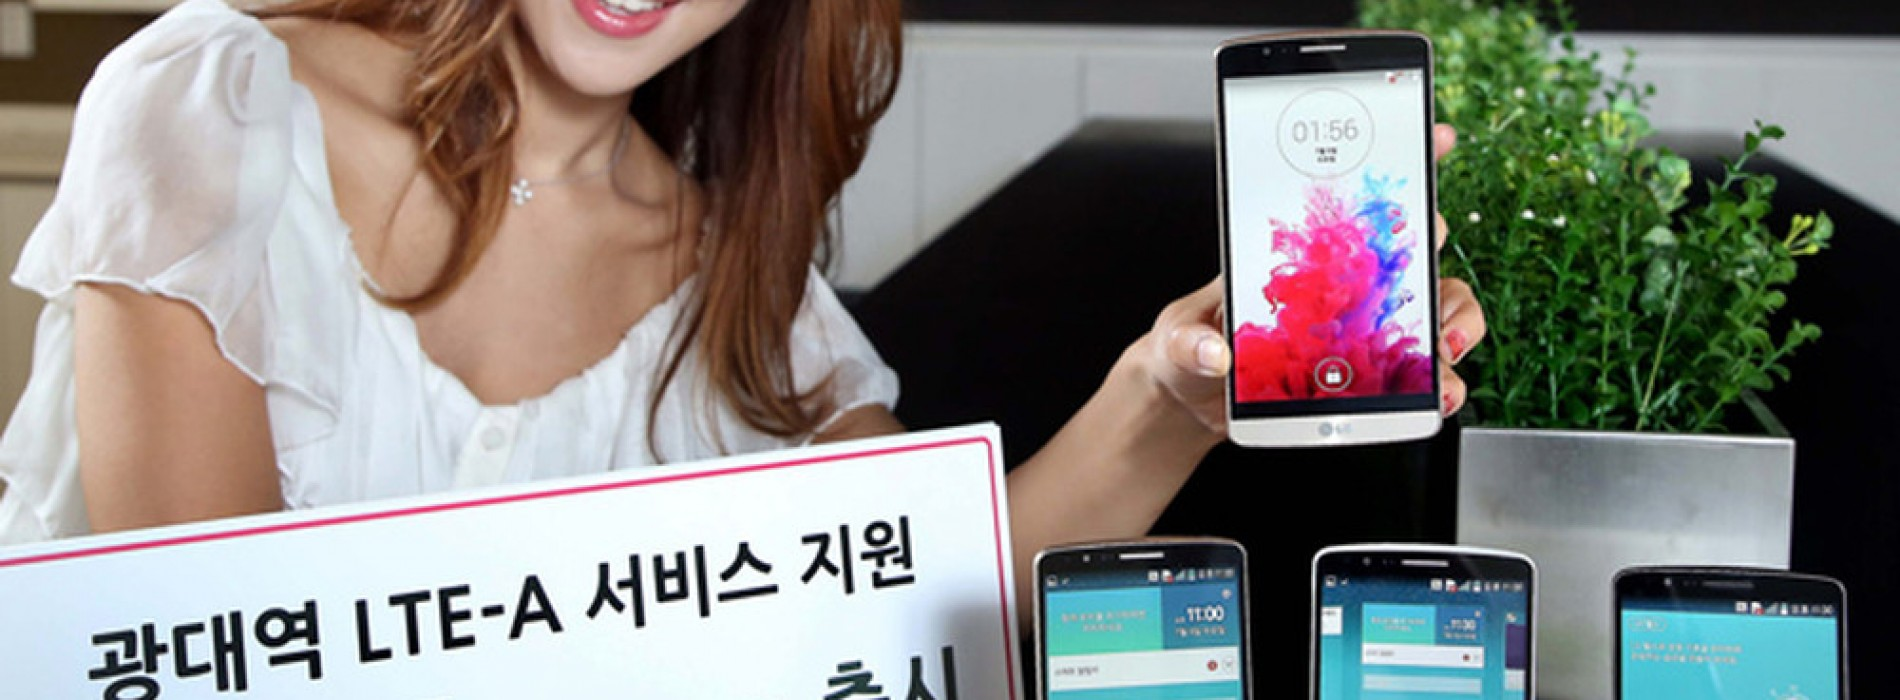 LG formally introduces G3 Cat 6